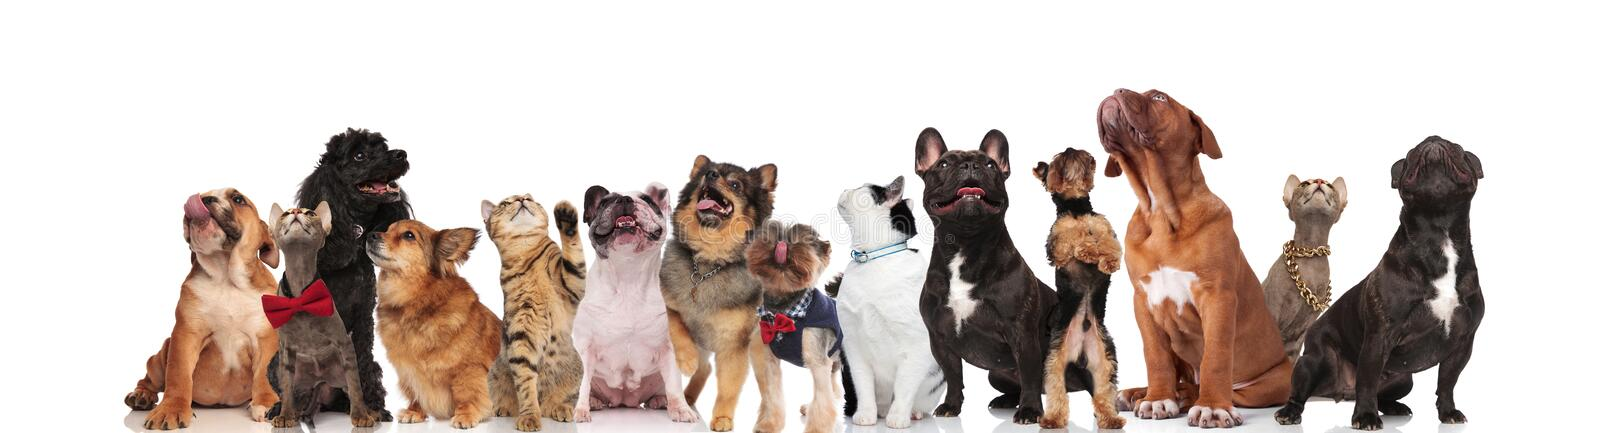 Adorable group of curious cats and dogs look up royalty free stock image